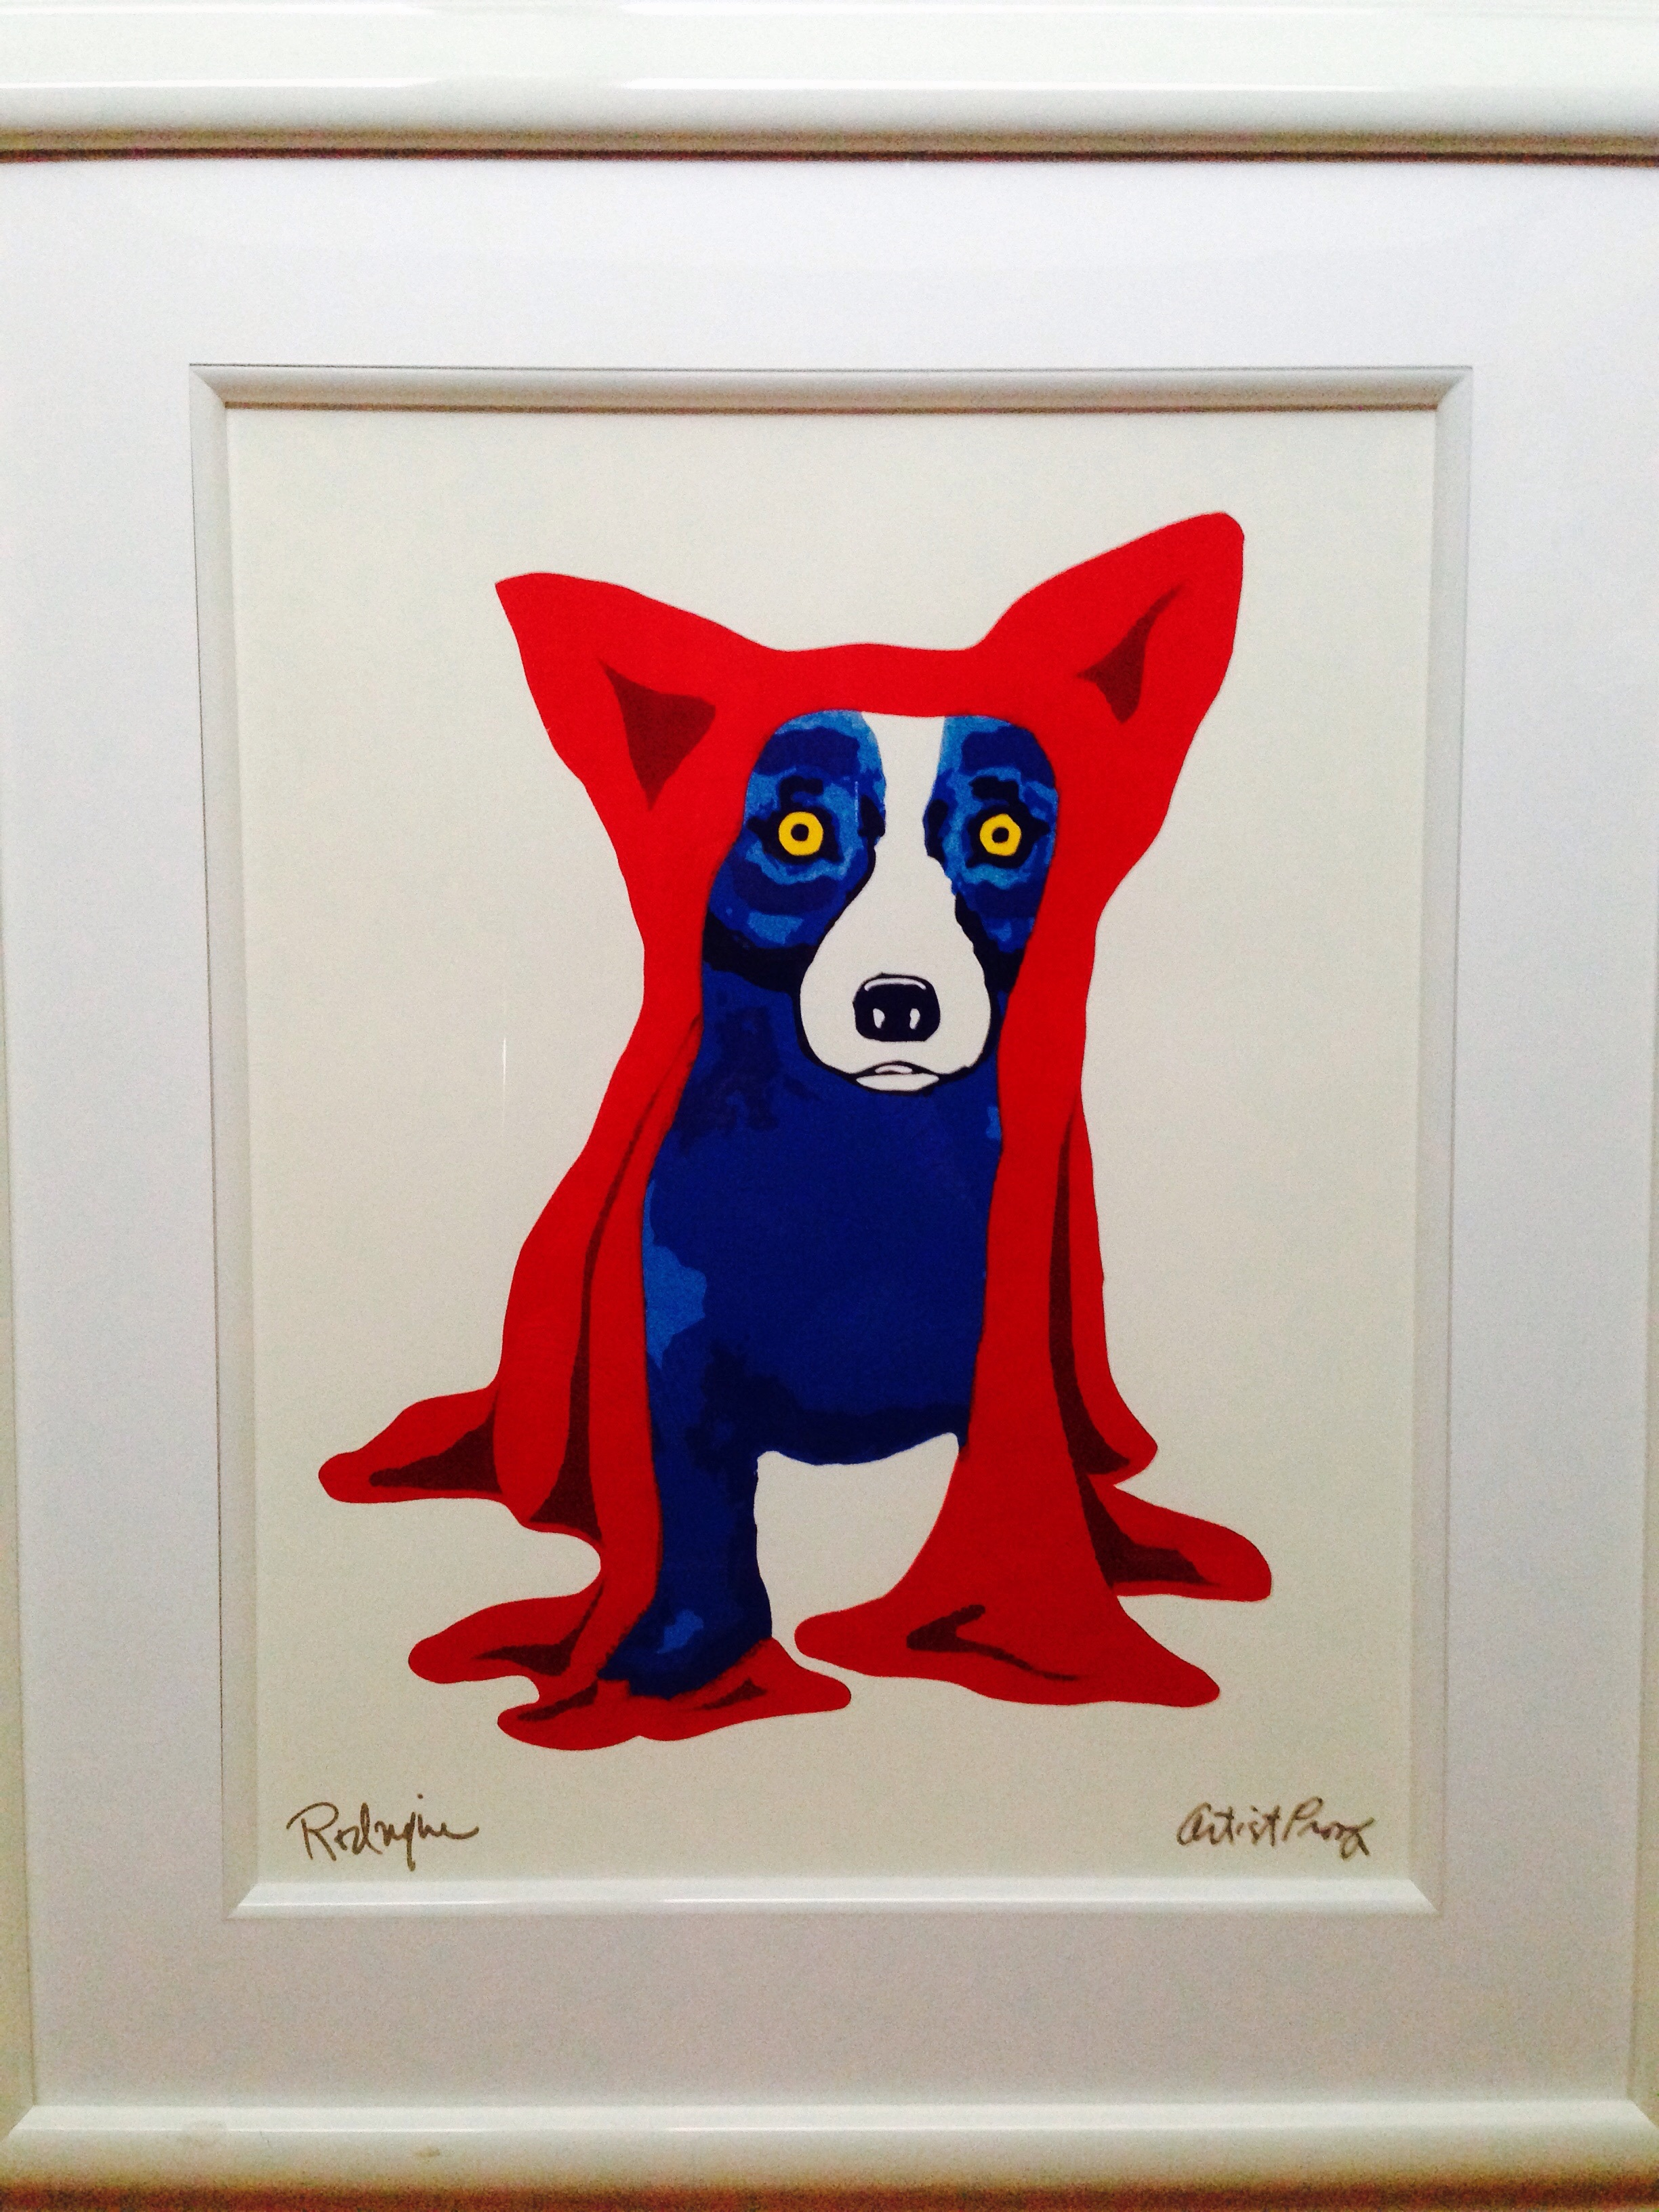 Hidin My Blues From You AP 1995 by Blue Dog George Rodrigue